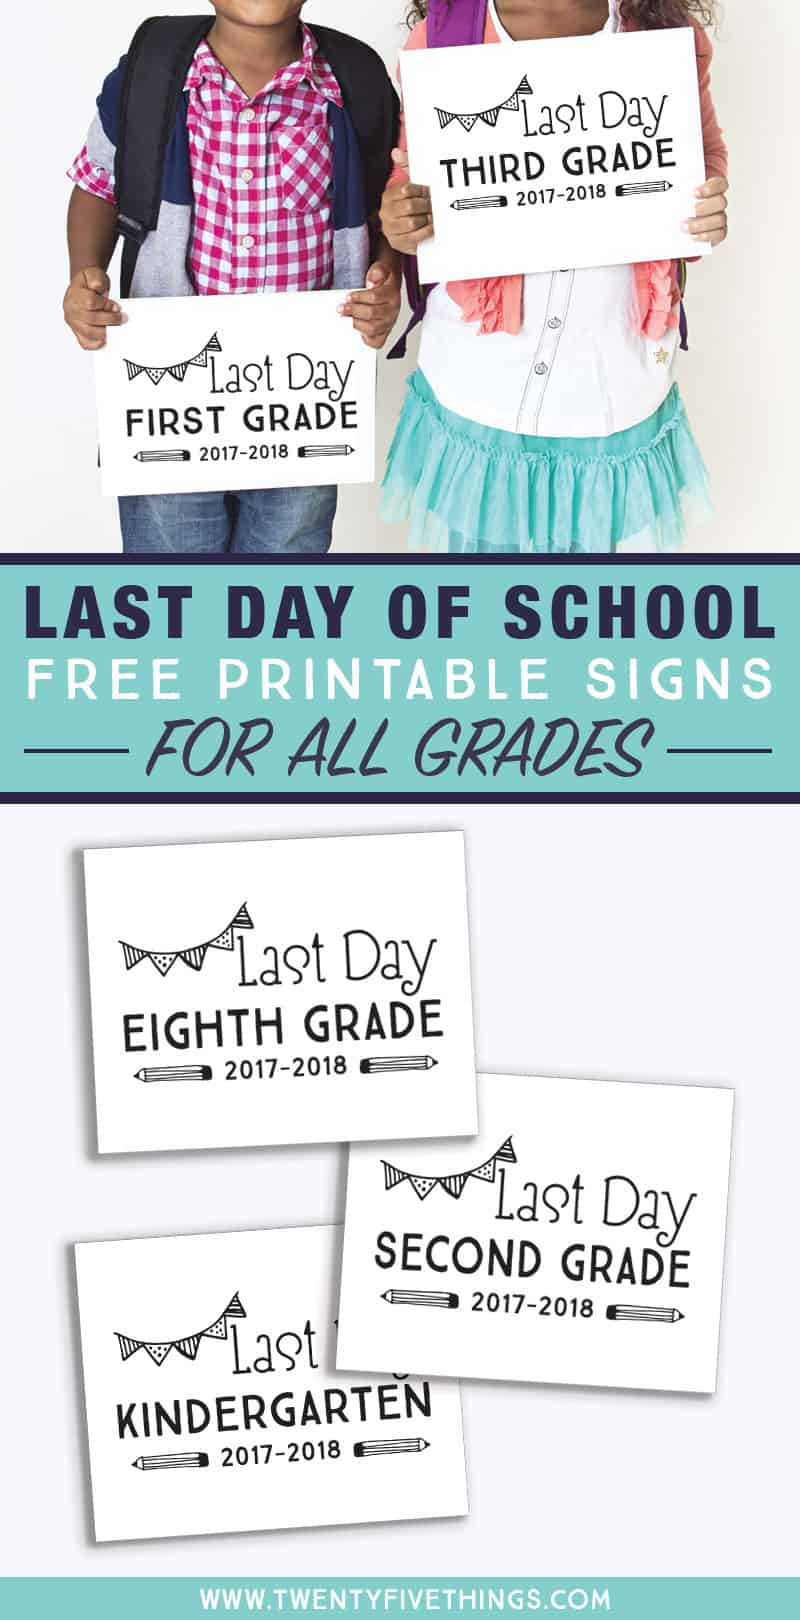 Print out these Last Day of School signs at home for fun and of year photos of the kids.